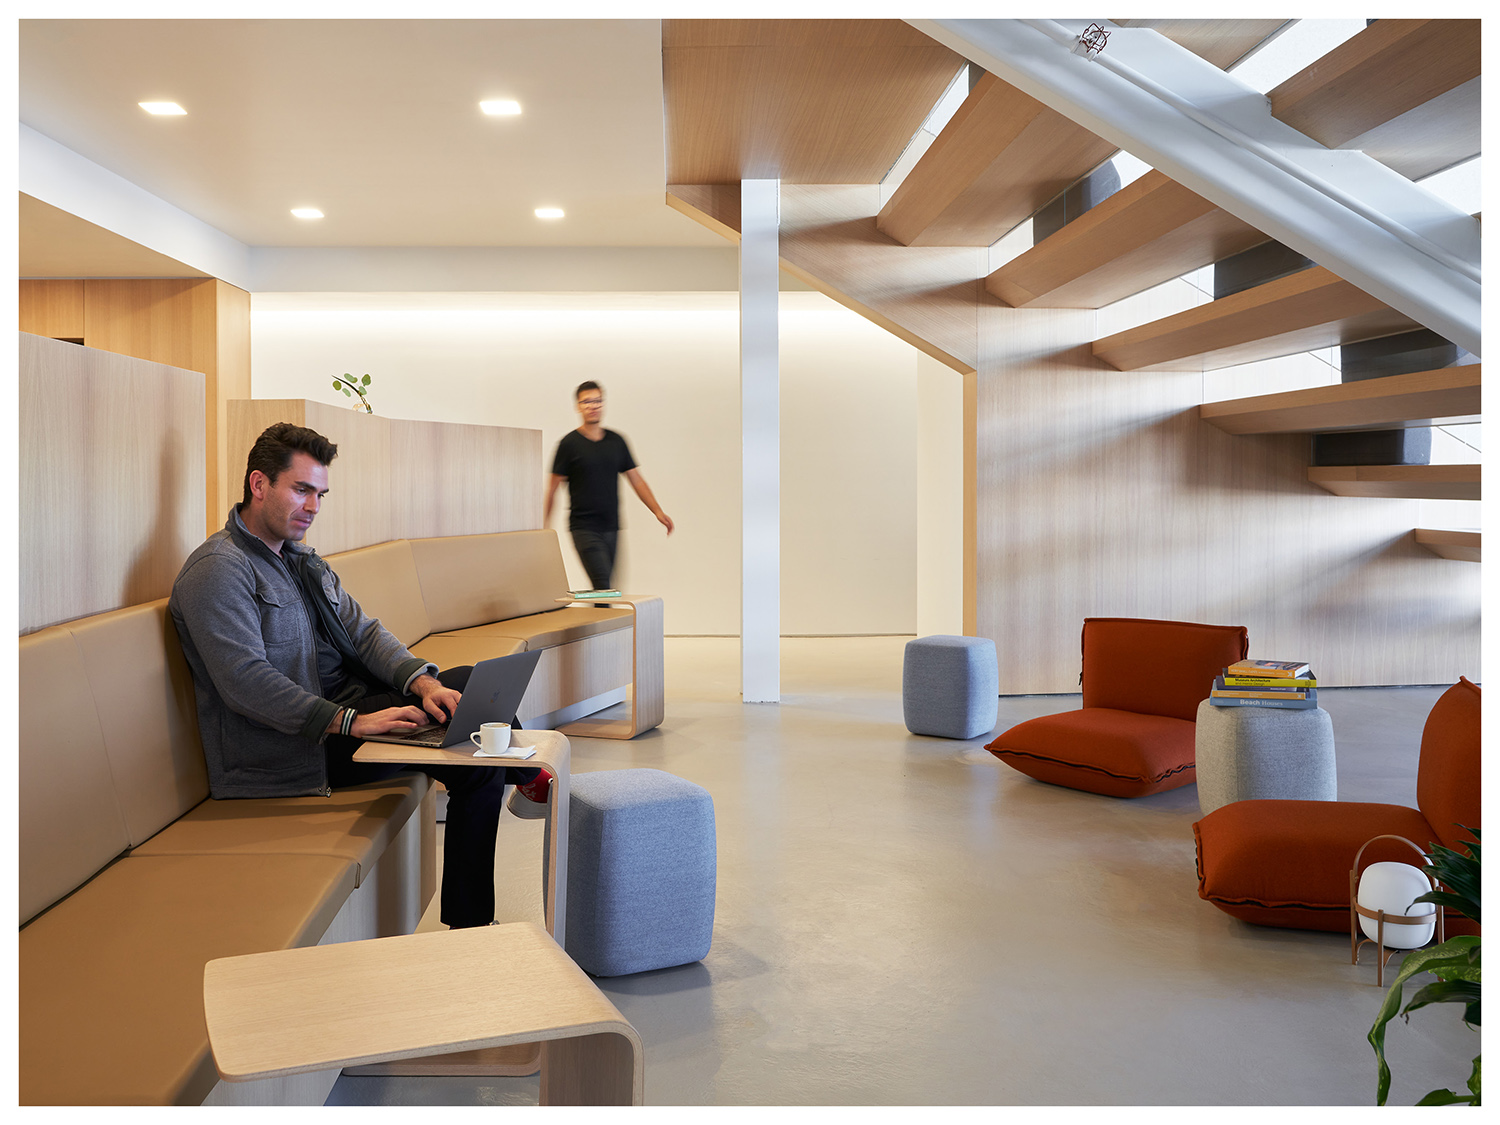 Using the area underneath the stairs for maximizing interaction and space. Kevin Scott}